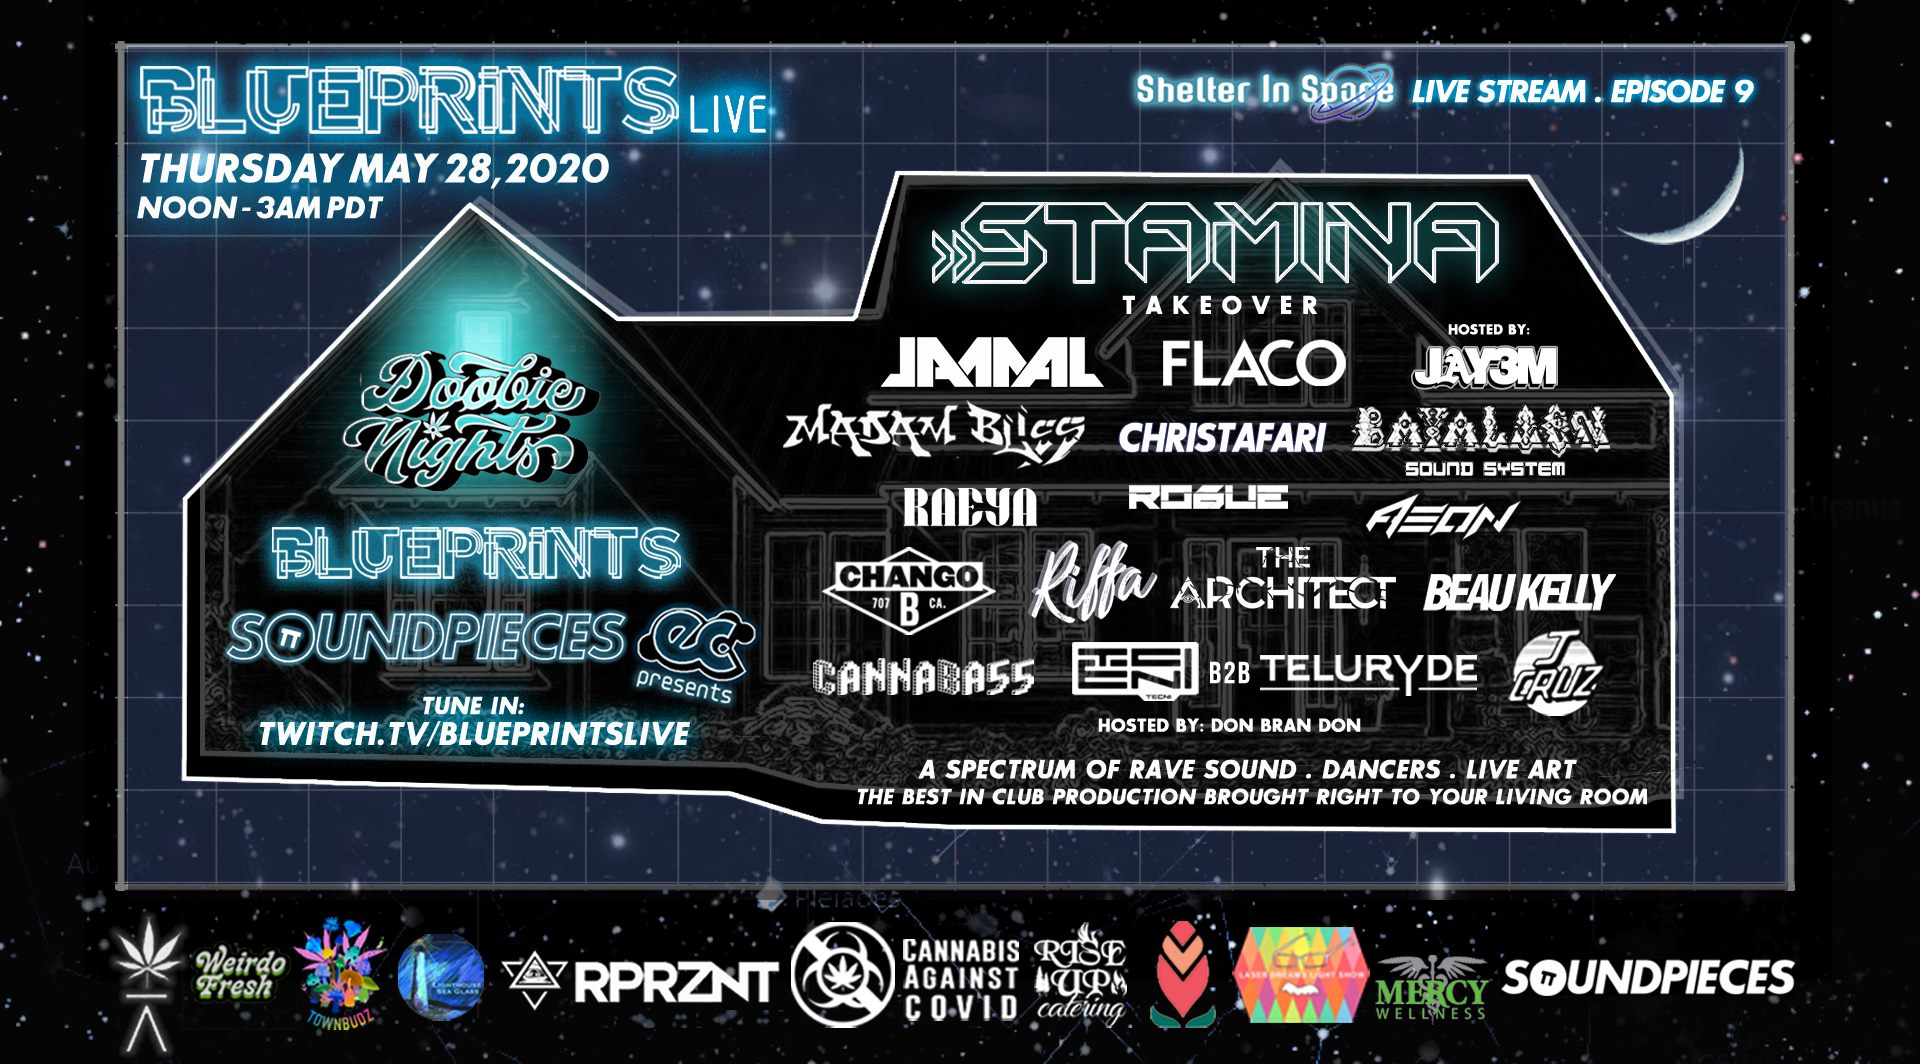 Shelter in Space with Blueprints Entertainment to be Hosted at Doobie Nights